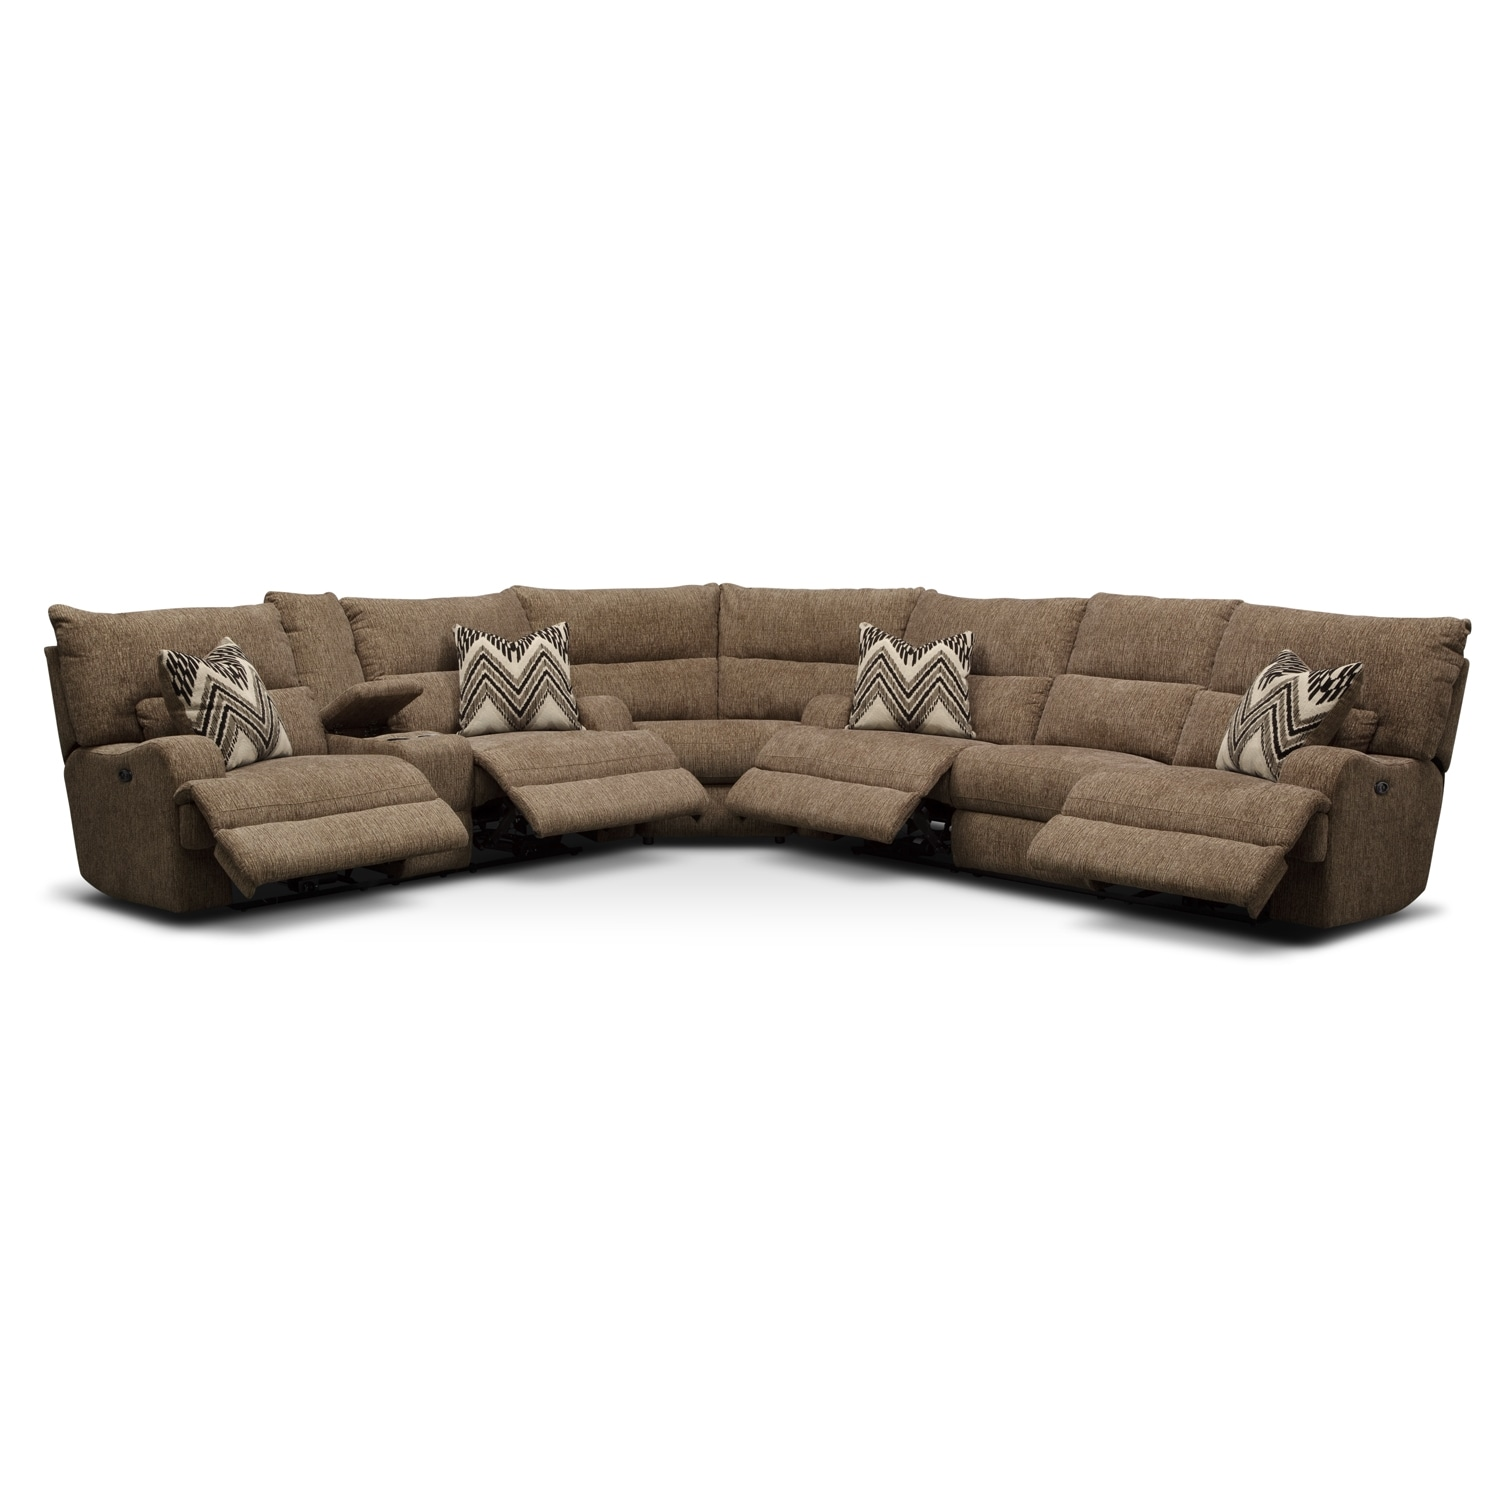 Navarro 3 Pc Power Reclining Sectional Furniturecom